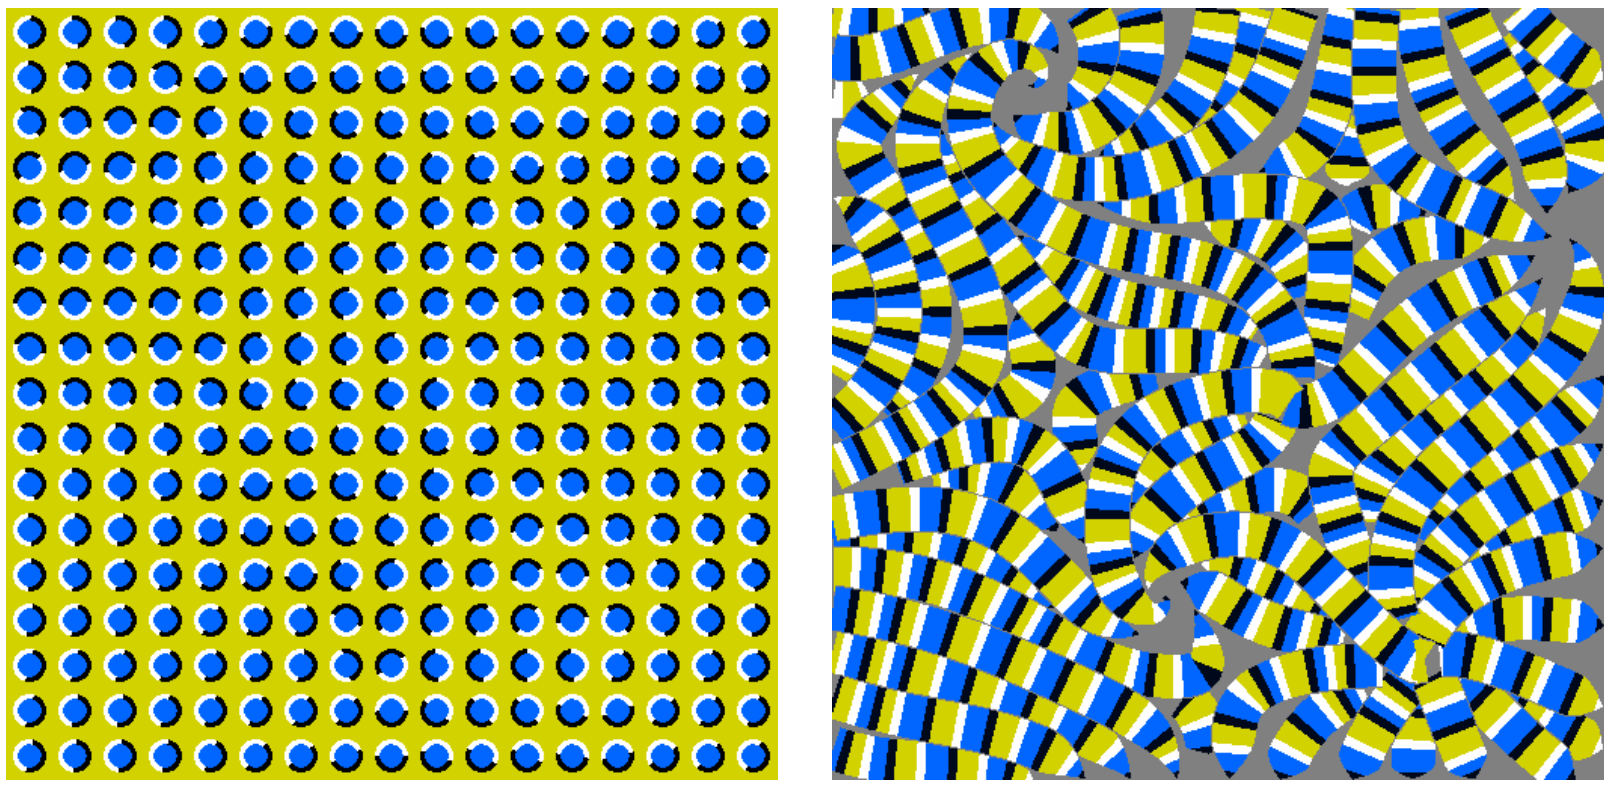 The picture appear to move  because of the arrangement of colors in the small small repeated patterns. Combination of 4 colors gives the best illusion. These 4 colors should be as different from each other as is possible